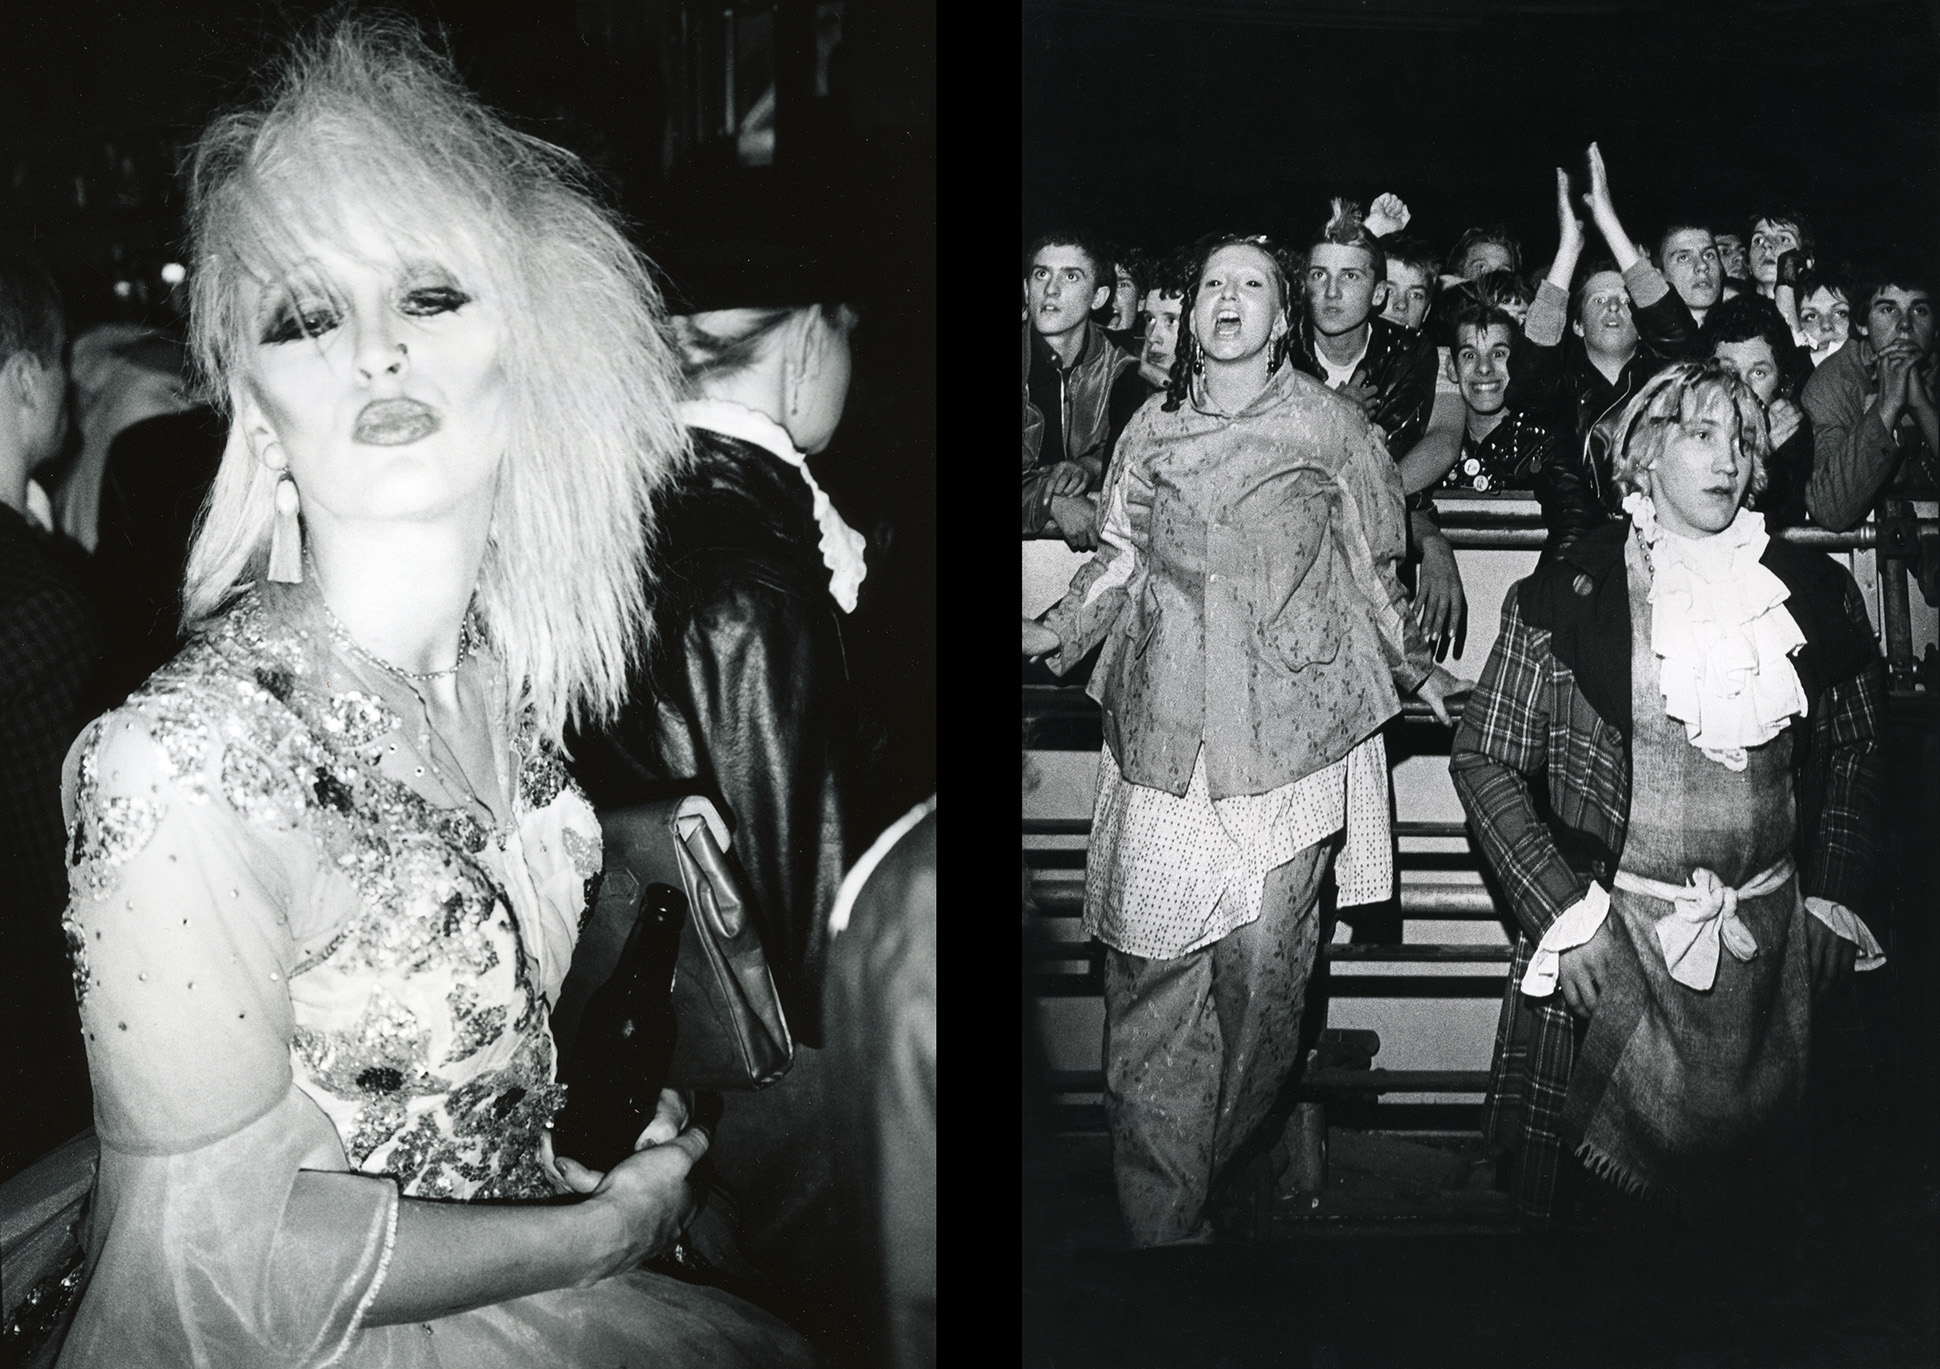 New Romantic icon Marilyn and Punk legend Jordan at an Adam Ant gig, London, 1980s by Peter Anderson